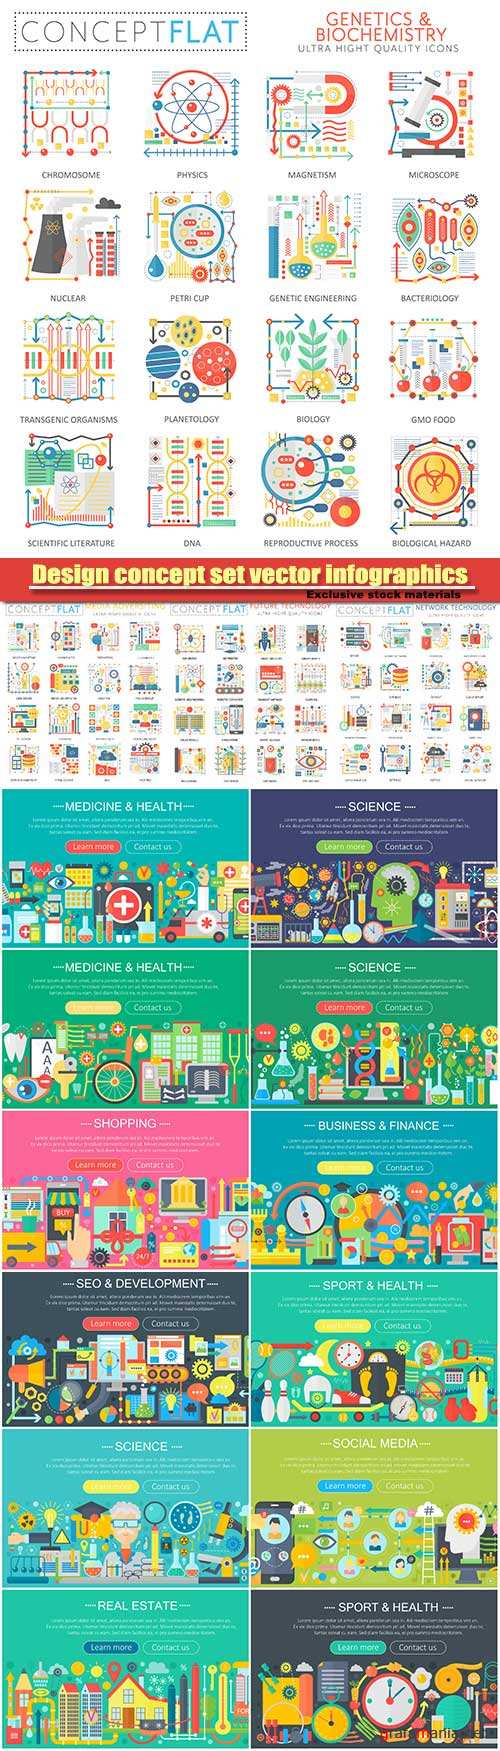 Medicine and health design concept set vector infographics, food and sport icons